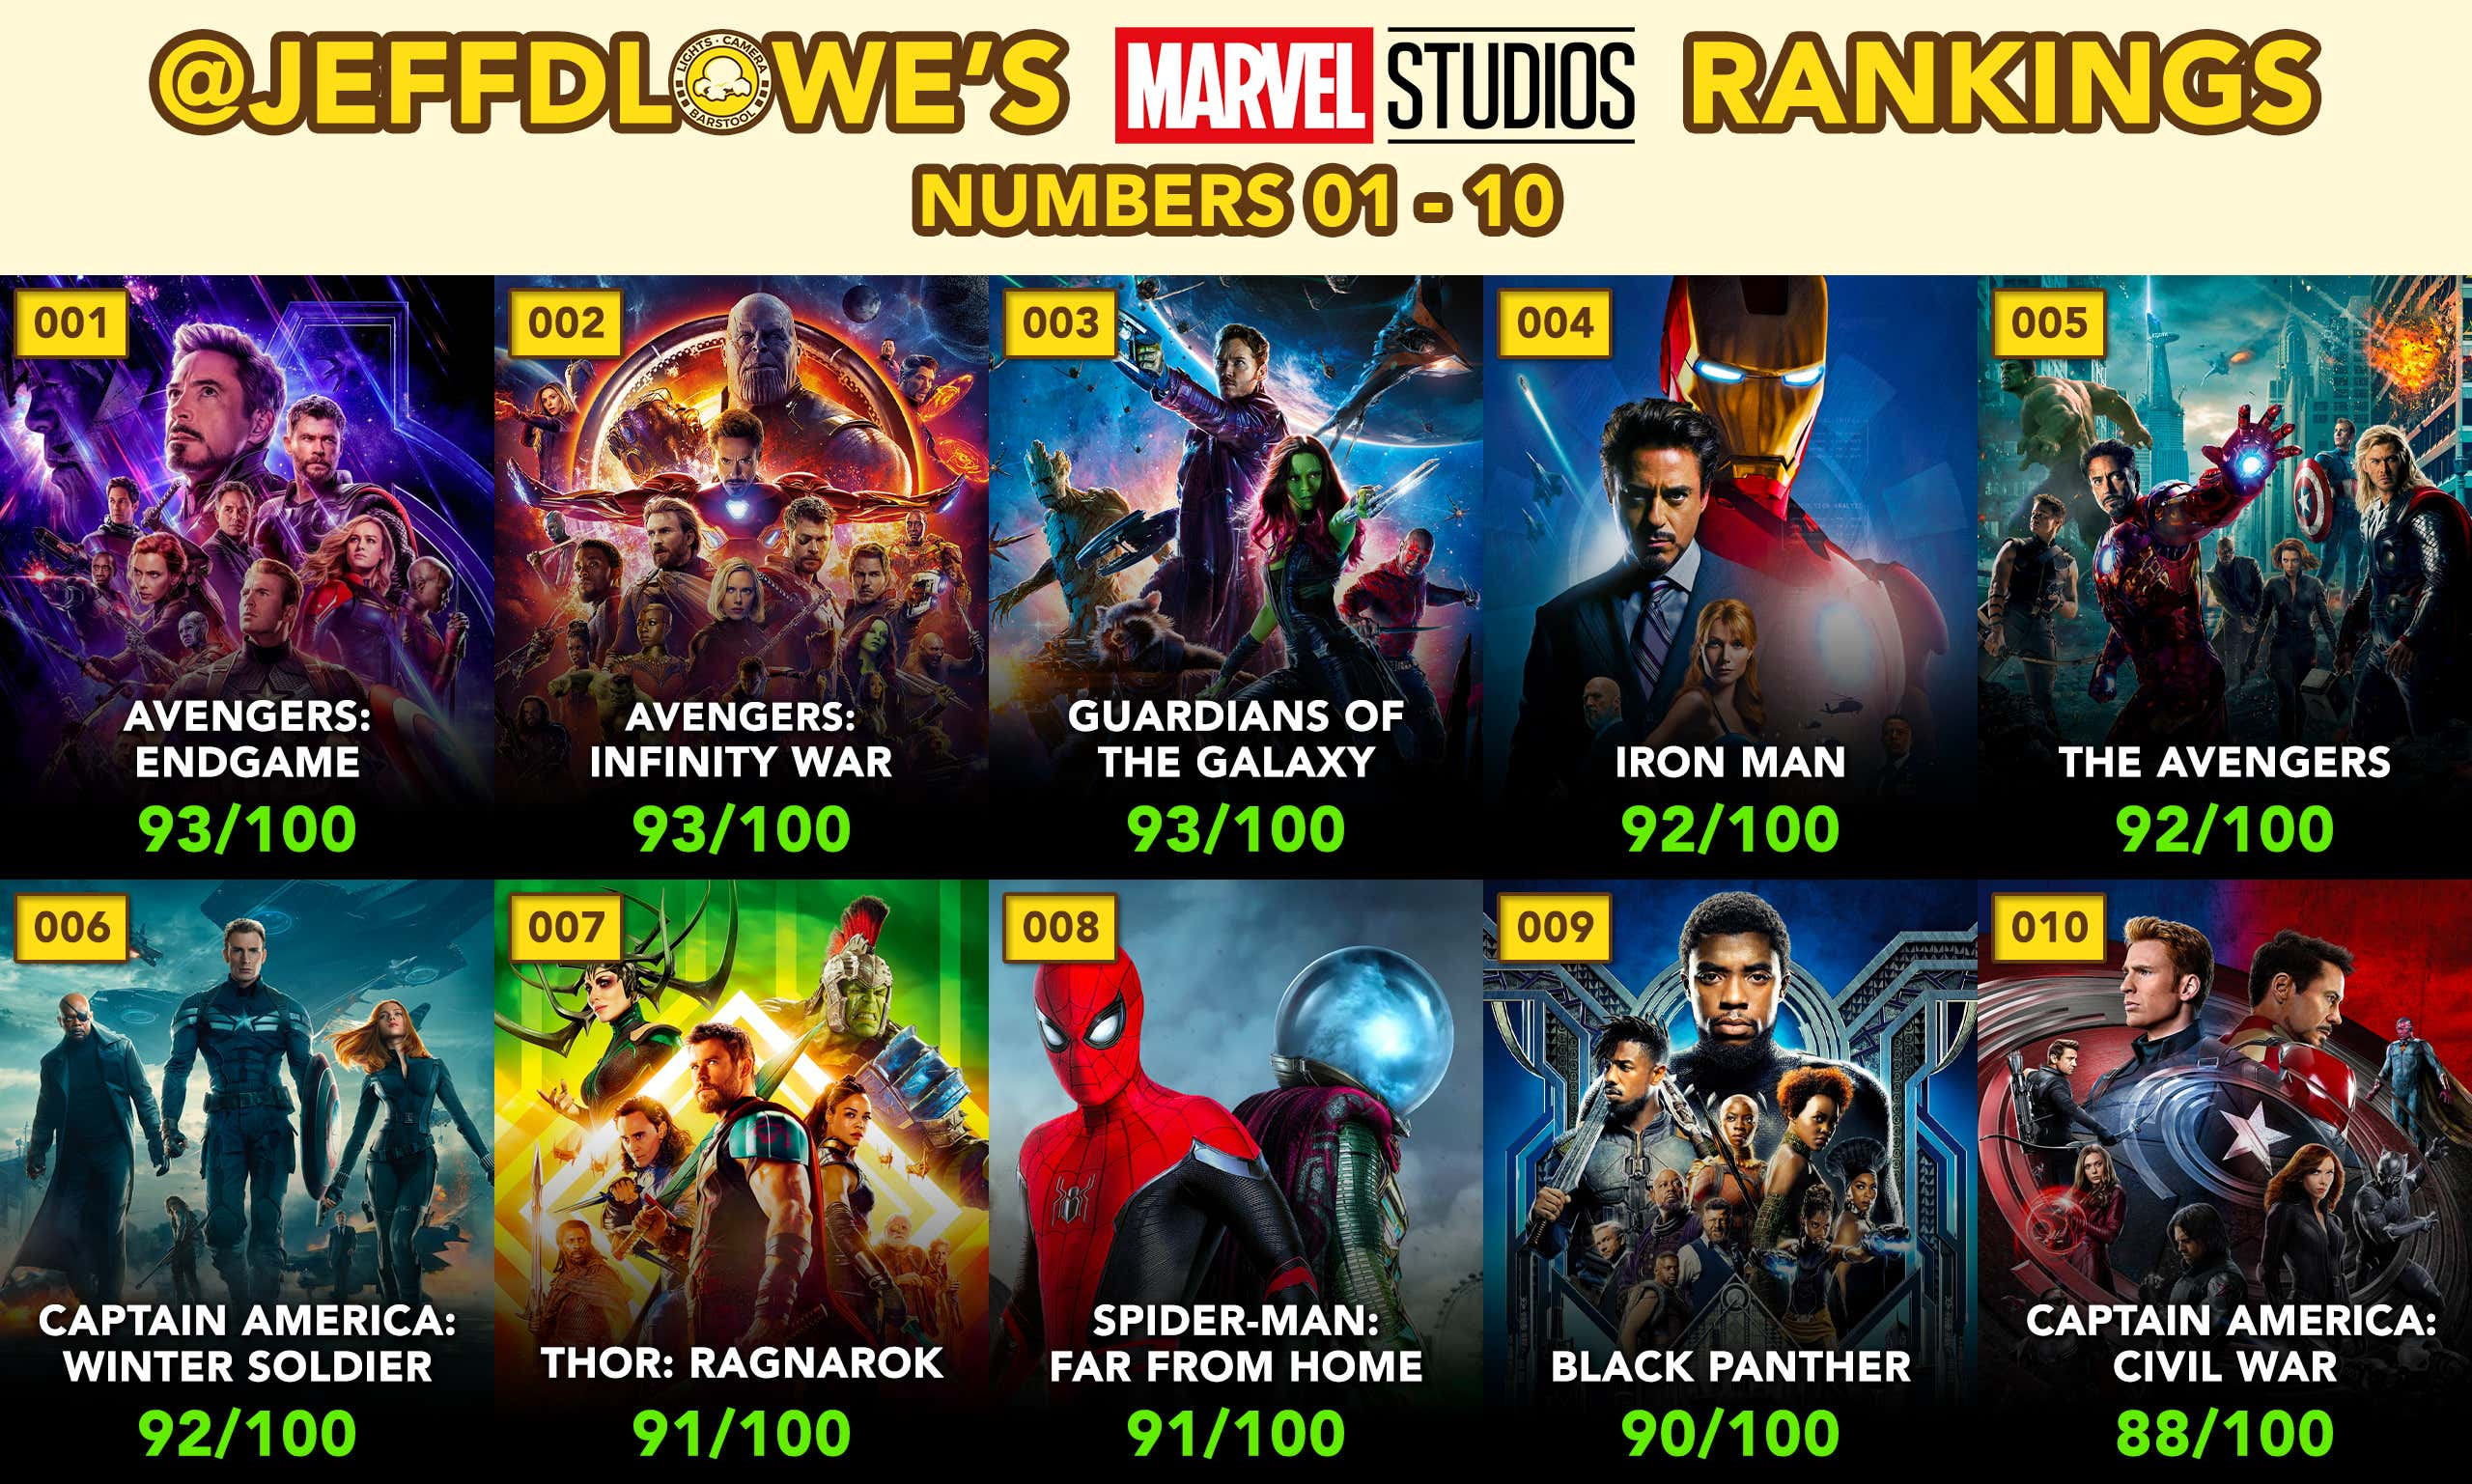 Ranking All 23 Marvel Movies With The Release Of 'Spider-Man: Far